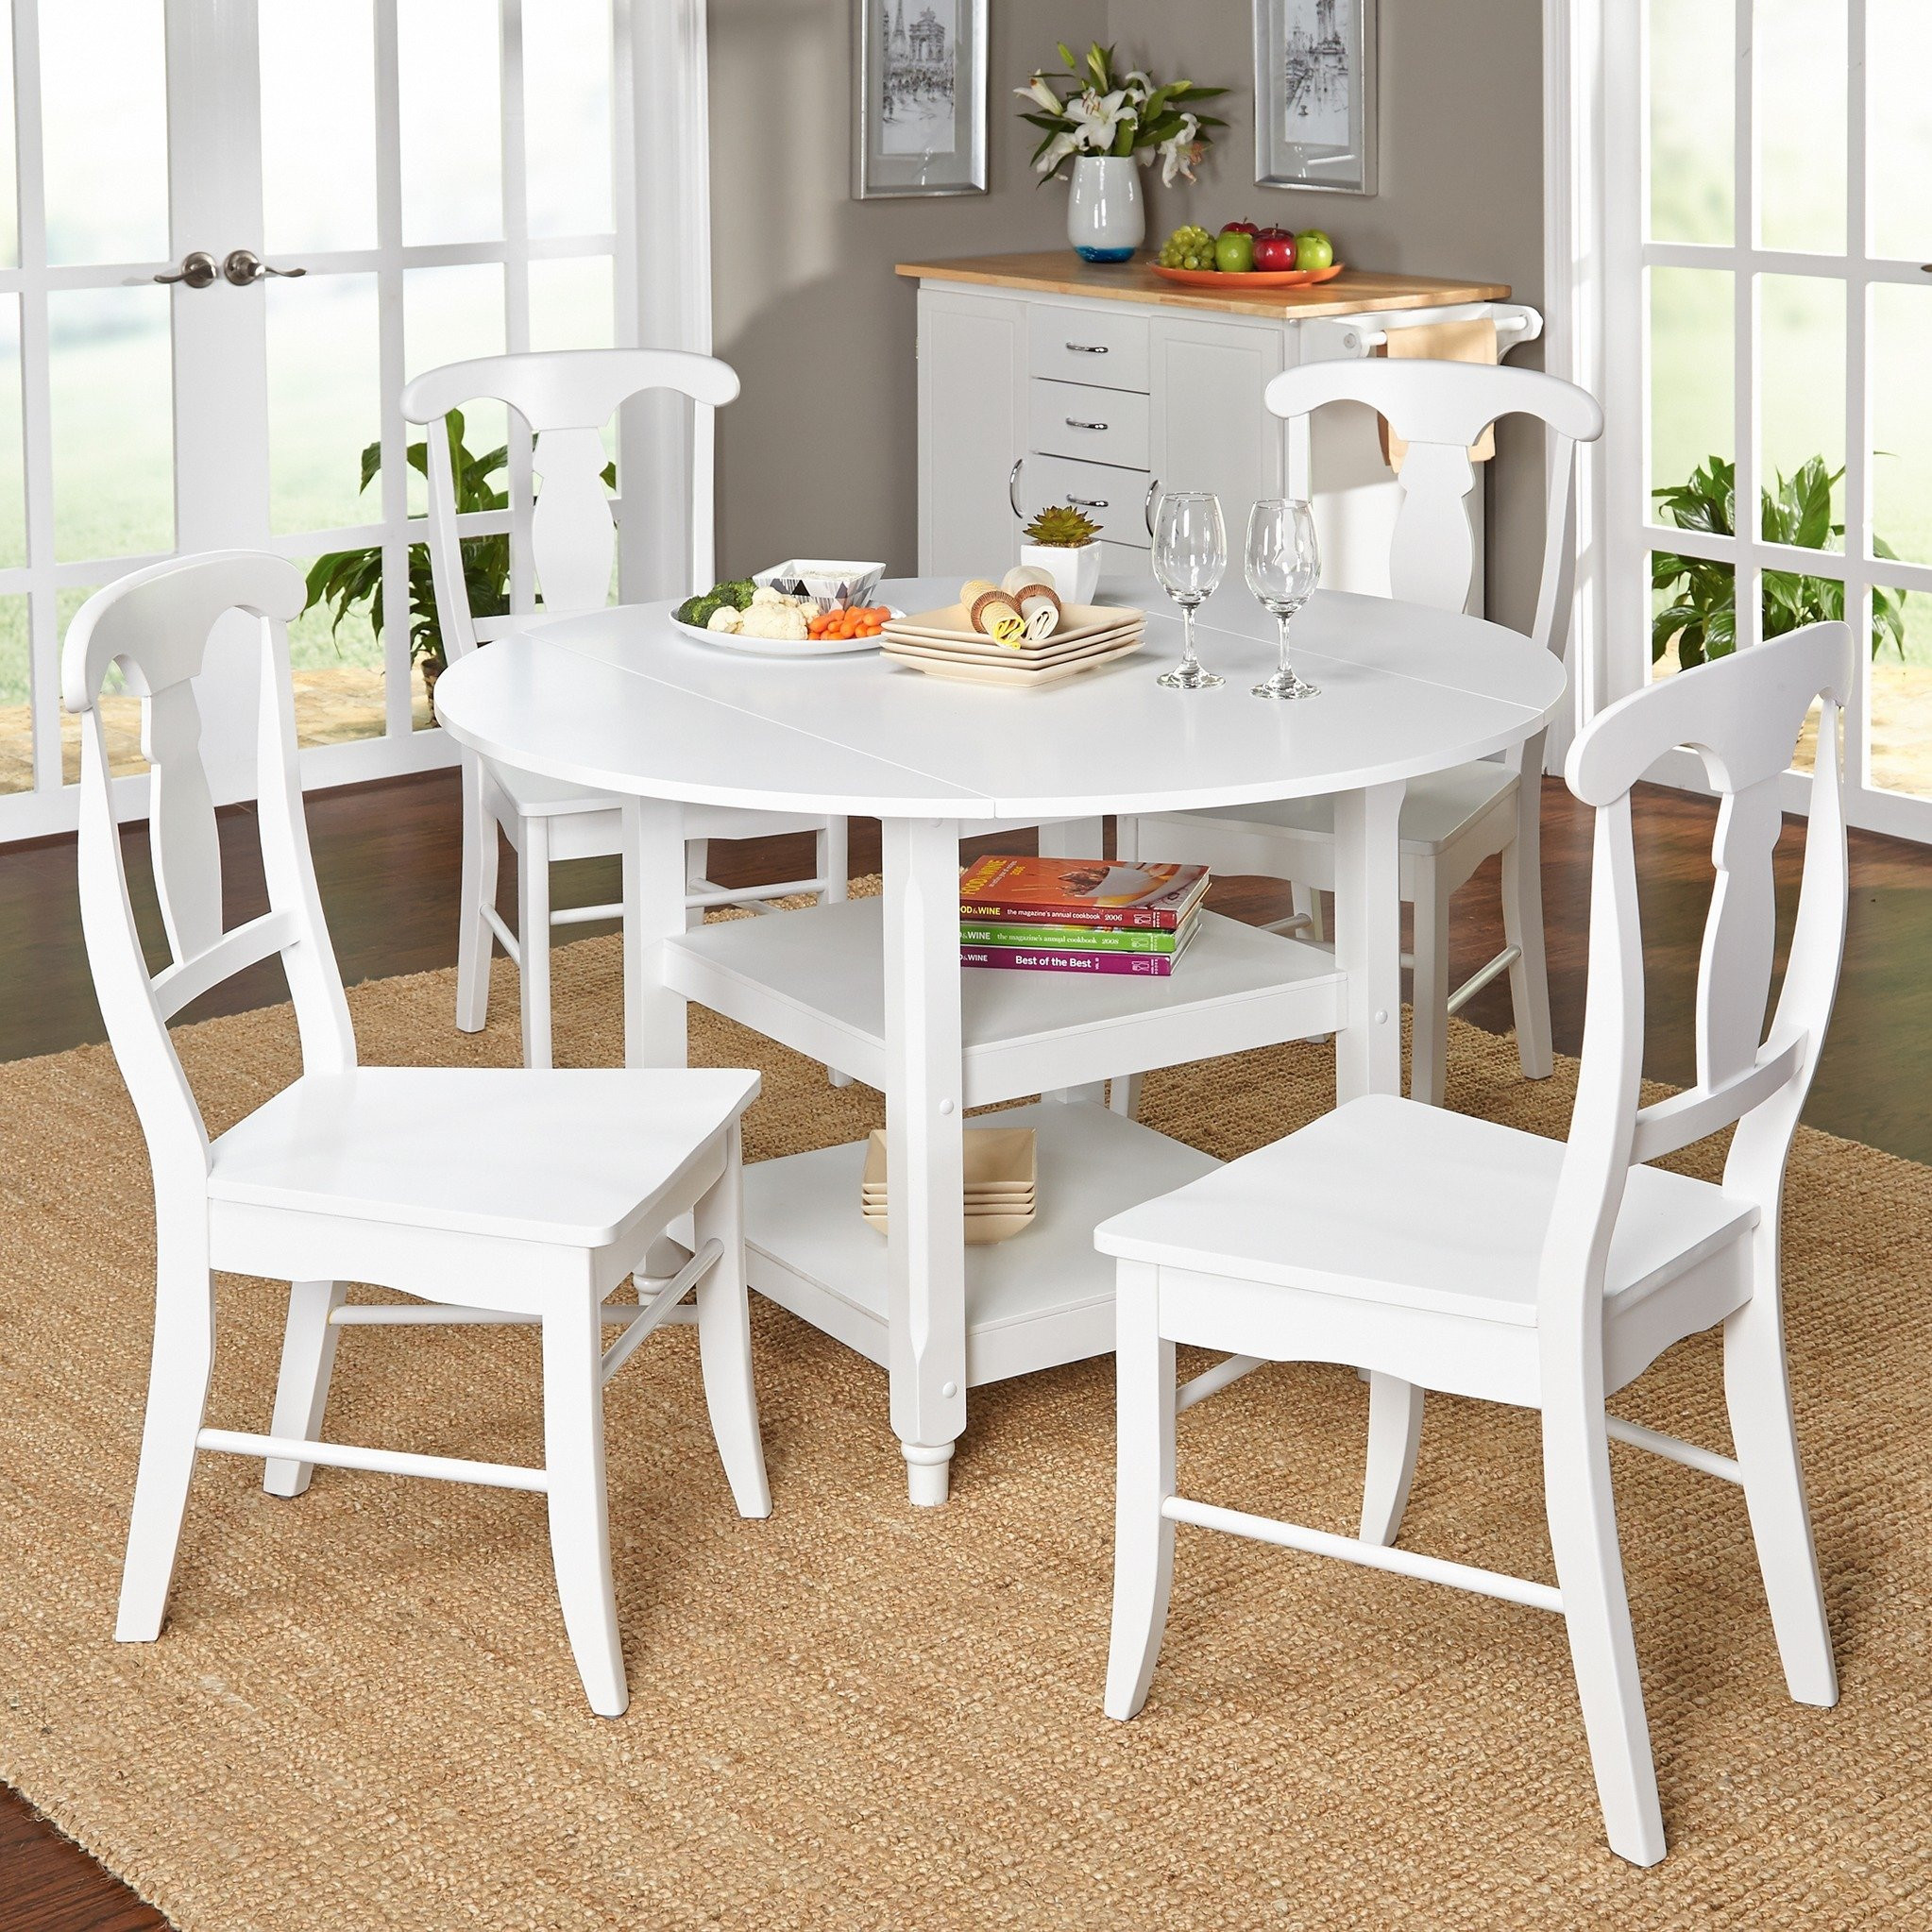 empire today hardwood flooring prices of shop simple living solid wood empire dining chairs set of 2 on regarding shop simple living solid wood empire dining chairs set of 2 on sale free shipping today overstock com 2560437